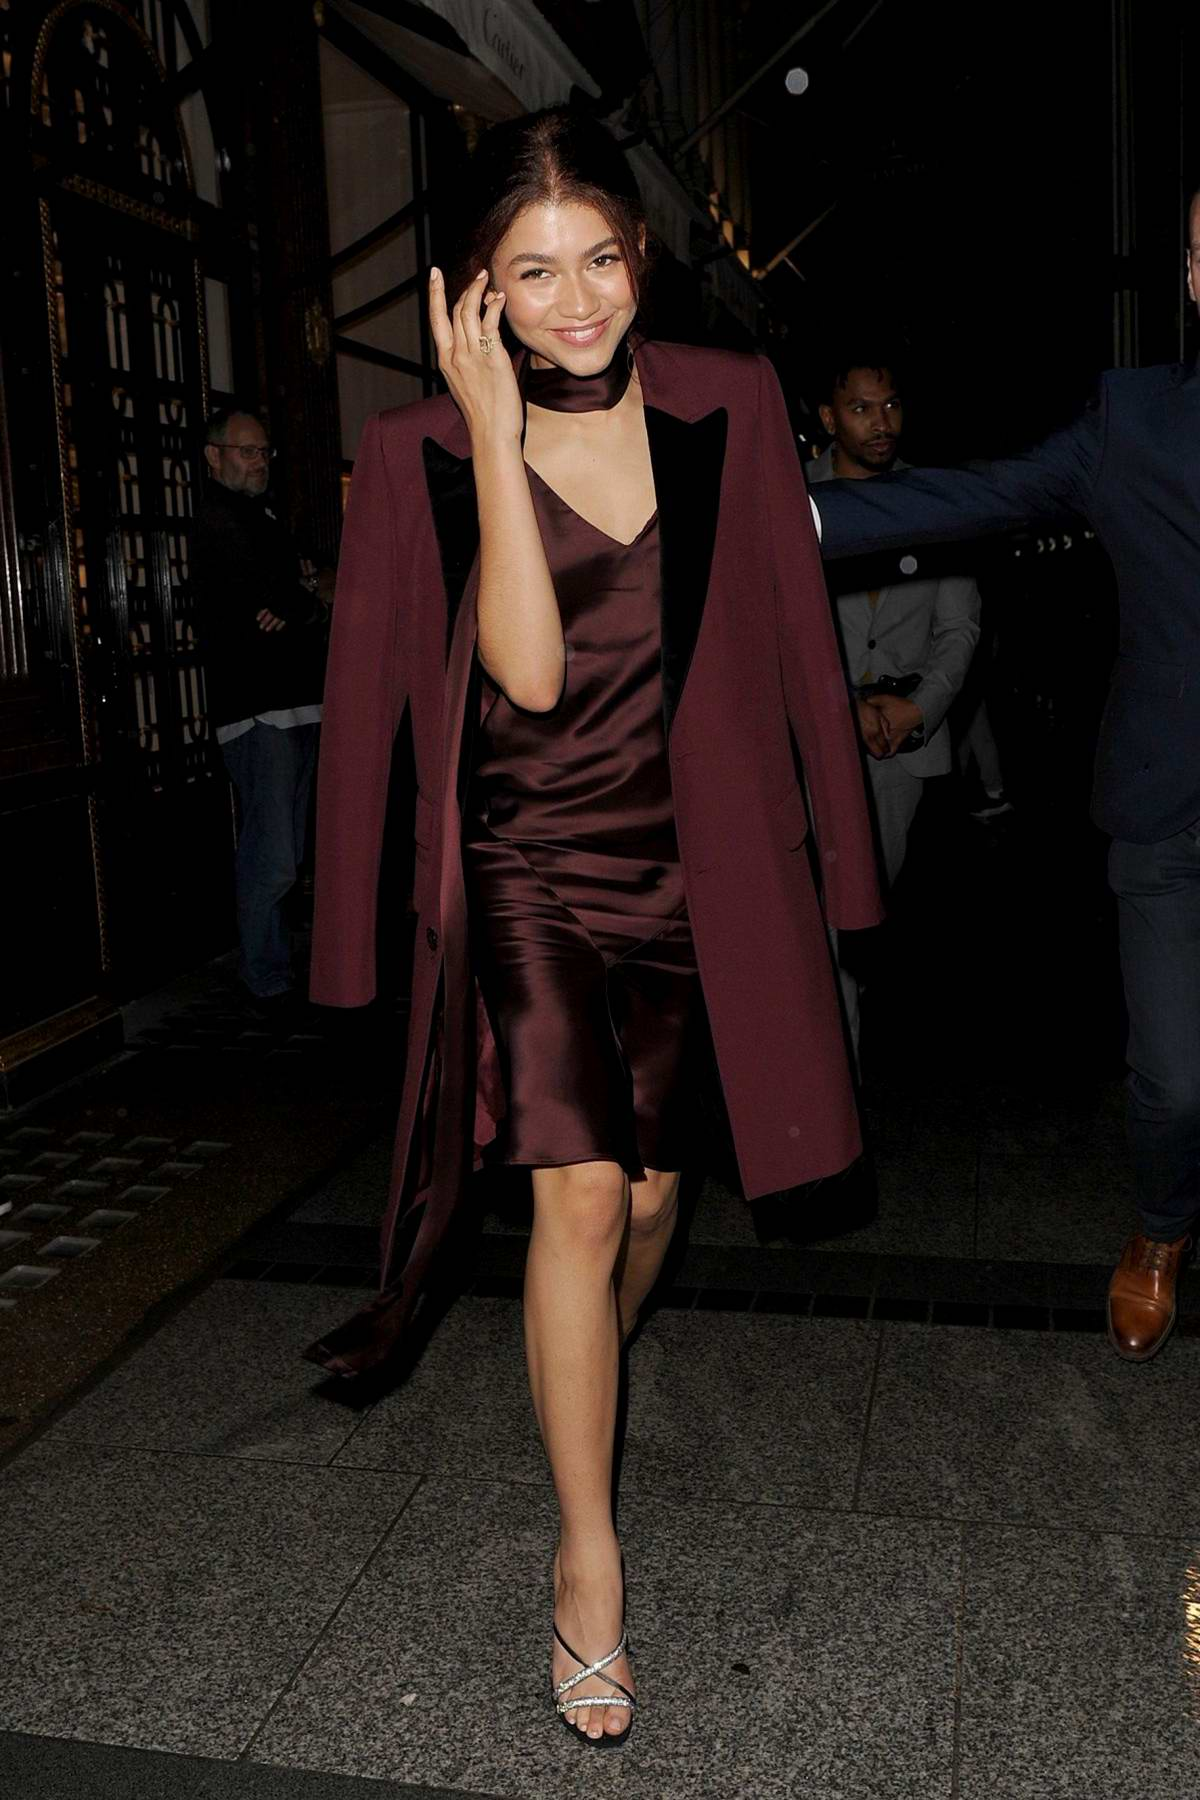 Zendaya smiles for the camera she leaves a Cartier Store in London, UK